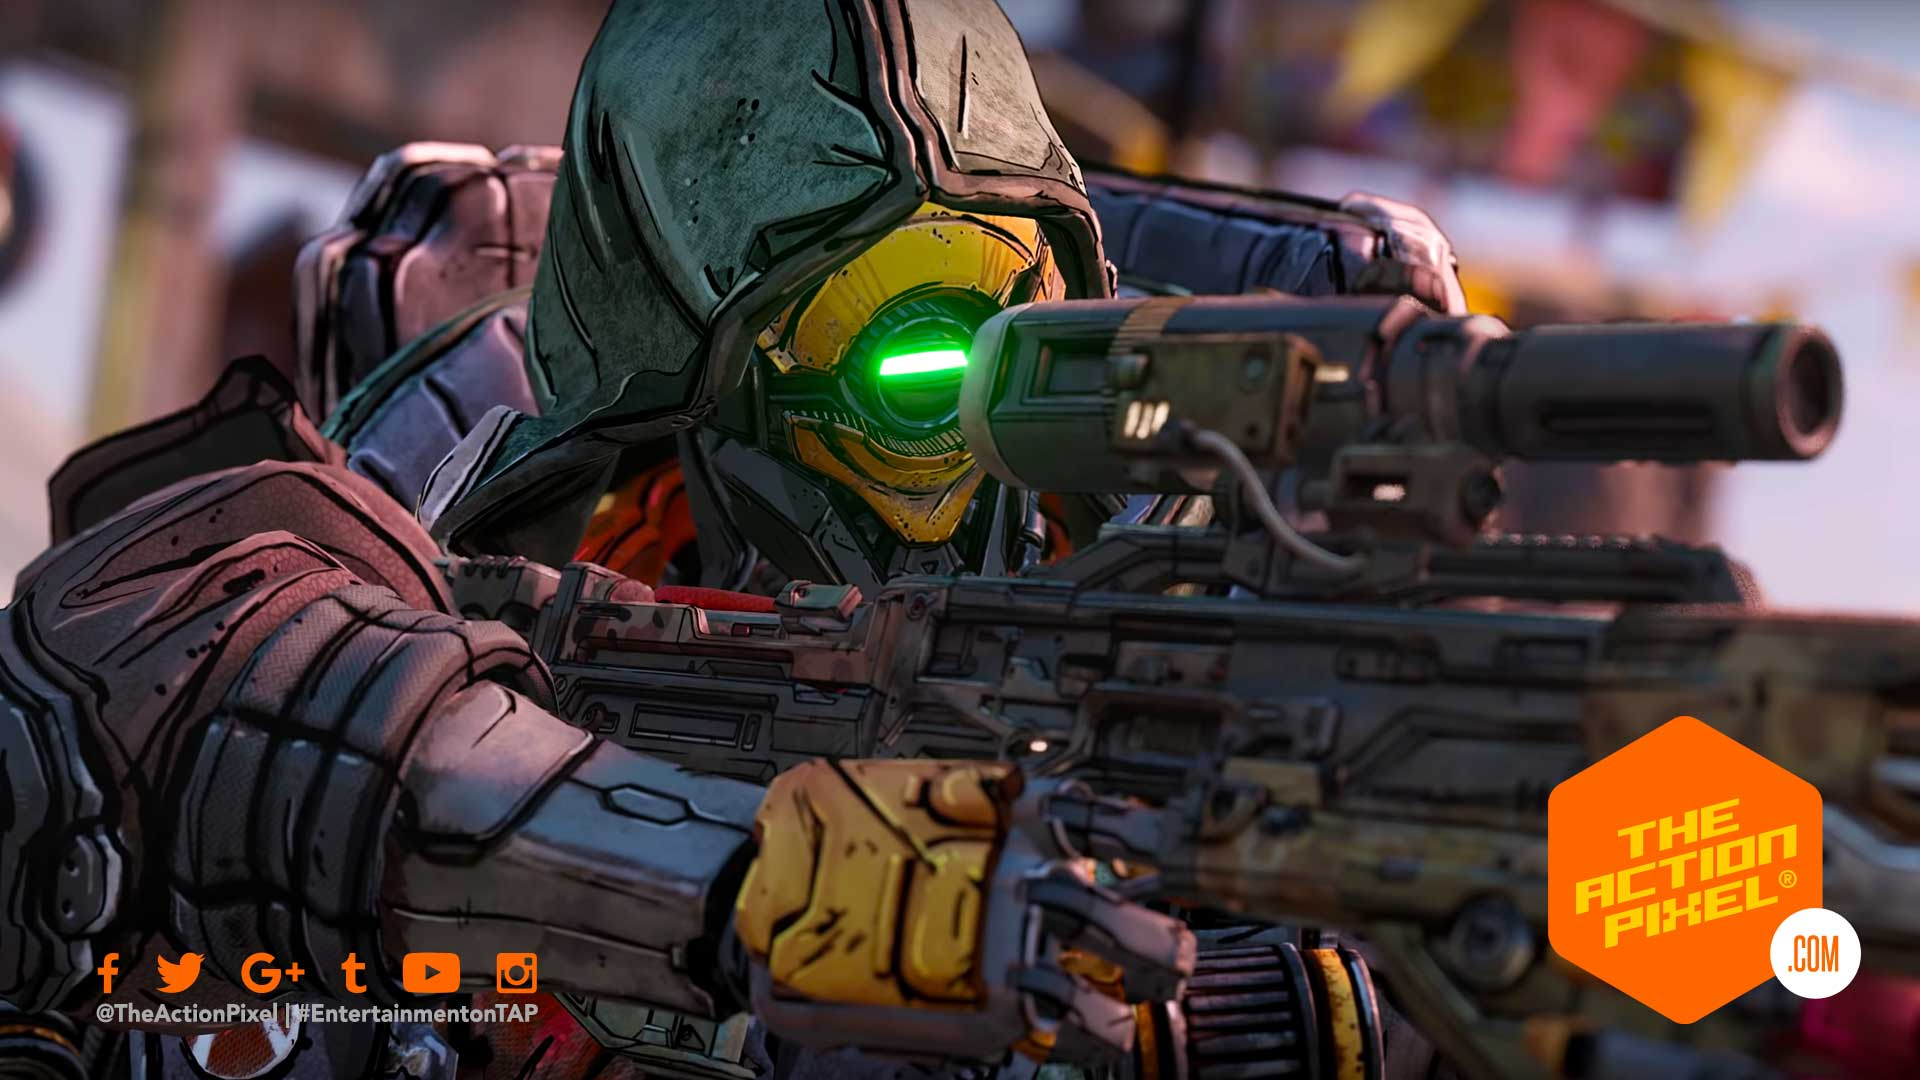 fl4k, borderlands 3, borderlands, character trailer, amara character trailer, borderlands 3 amara, looking for a fight, borderlands, featured, the action pixel, entertainment on tap, beastmaster, hunter,featured